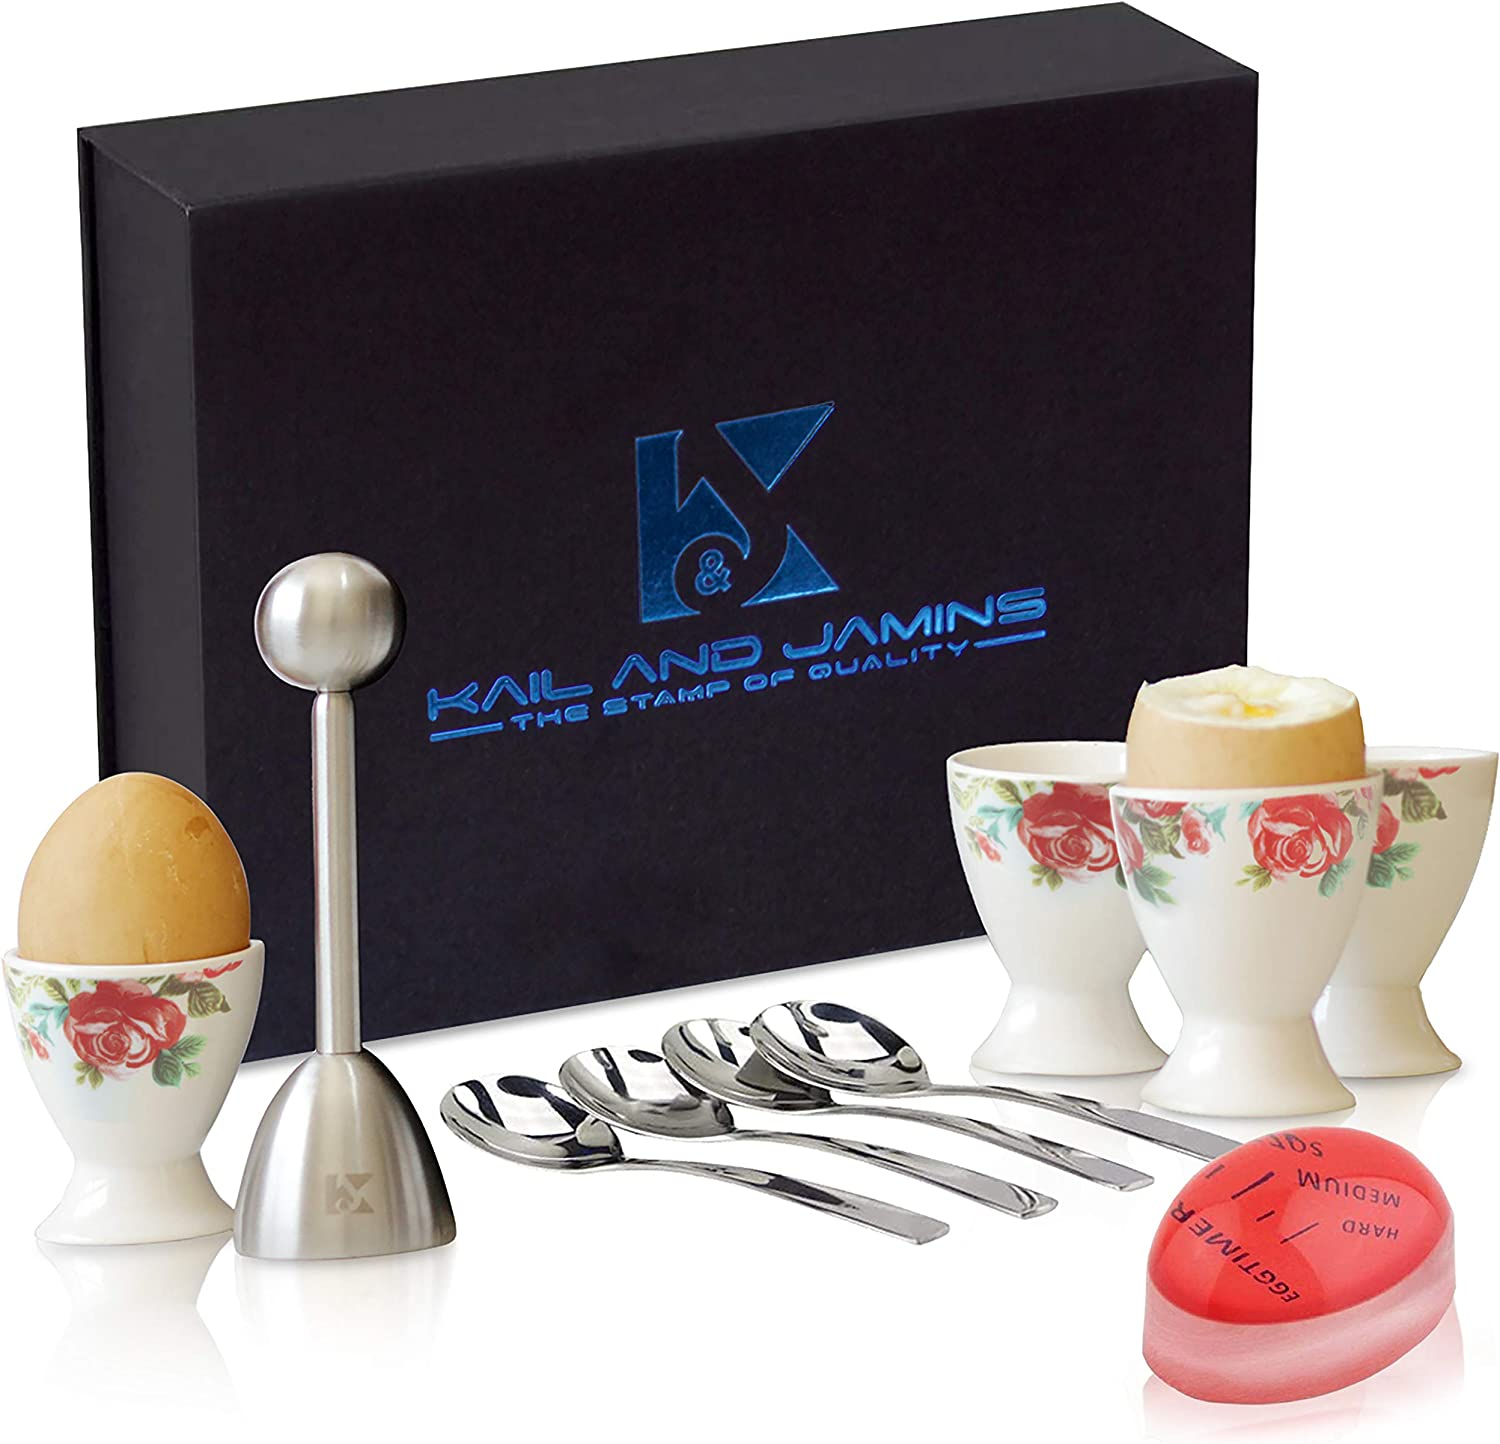 Egg Cups & Cracker Set with Beautiful Storage Box – Set Includes 4 Ceramic Egg Holders + 4 SS Spoons + 1 Egg Topper + Timer - Use the Cutter For Hard & Soft Boiled Eggs - Could be used as Egg Holders